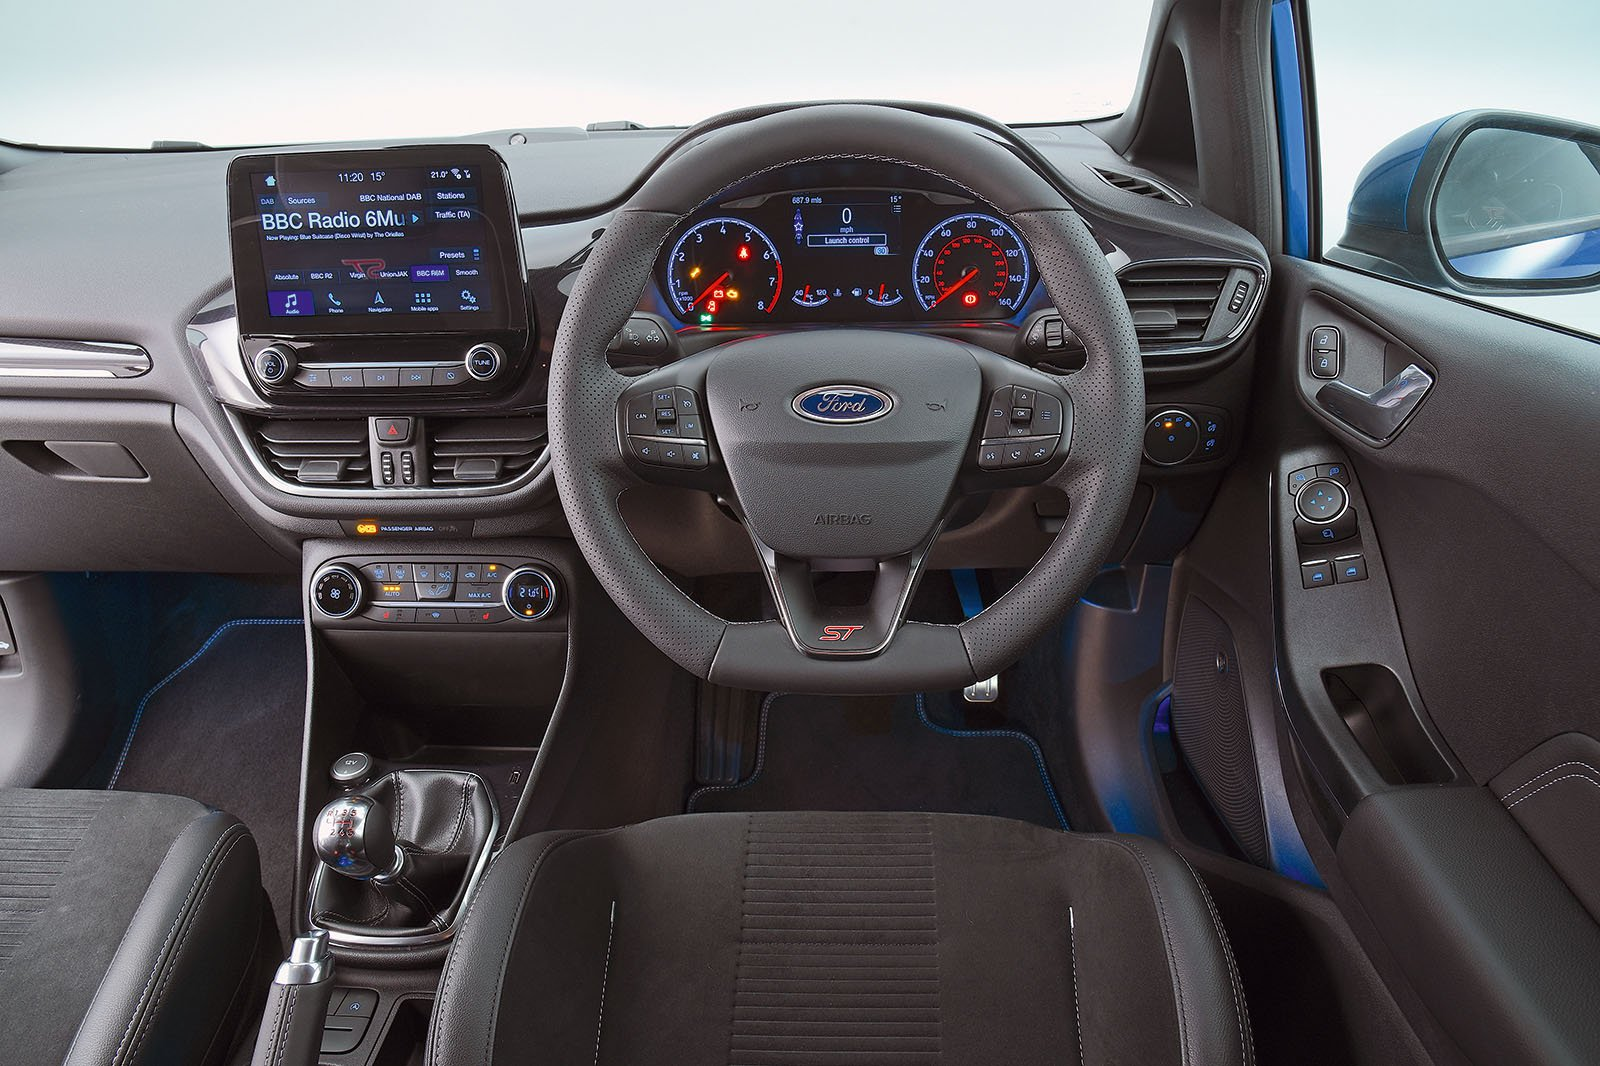 2018 Ford Fiesta ST interior